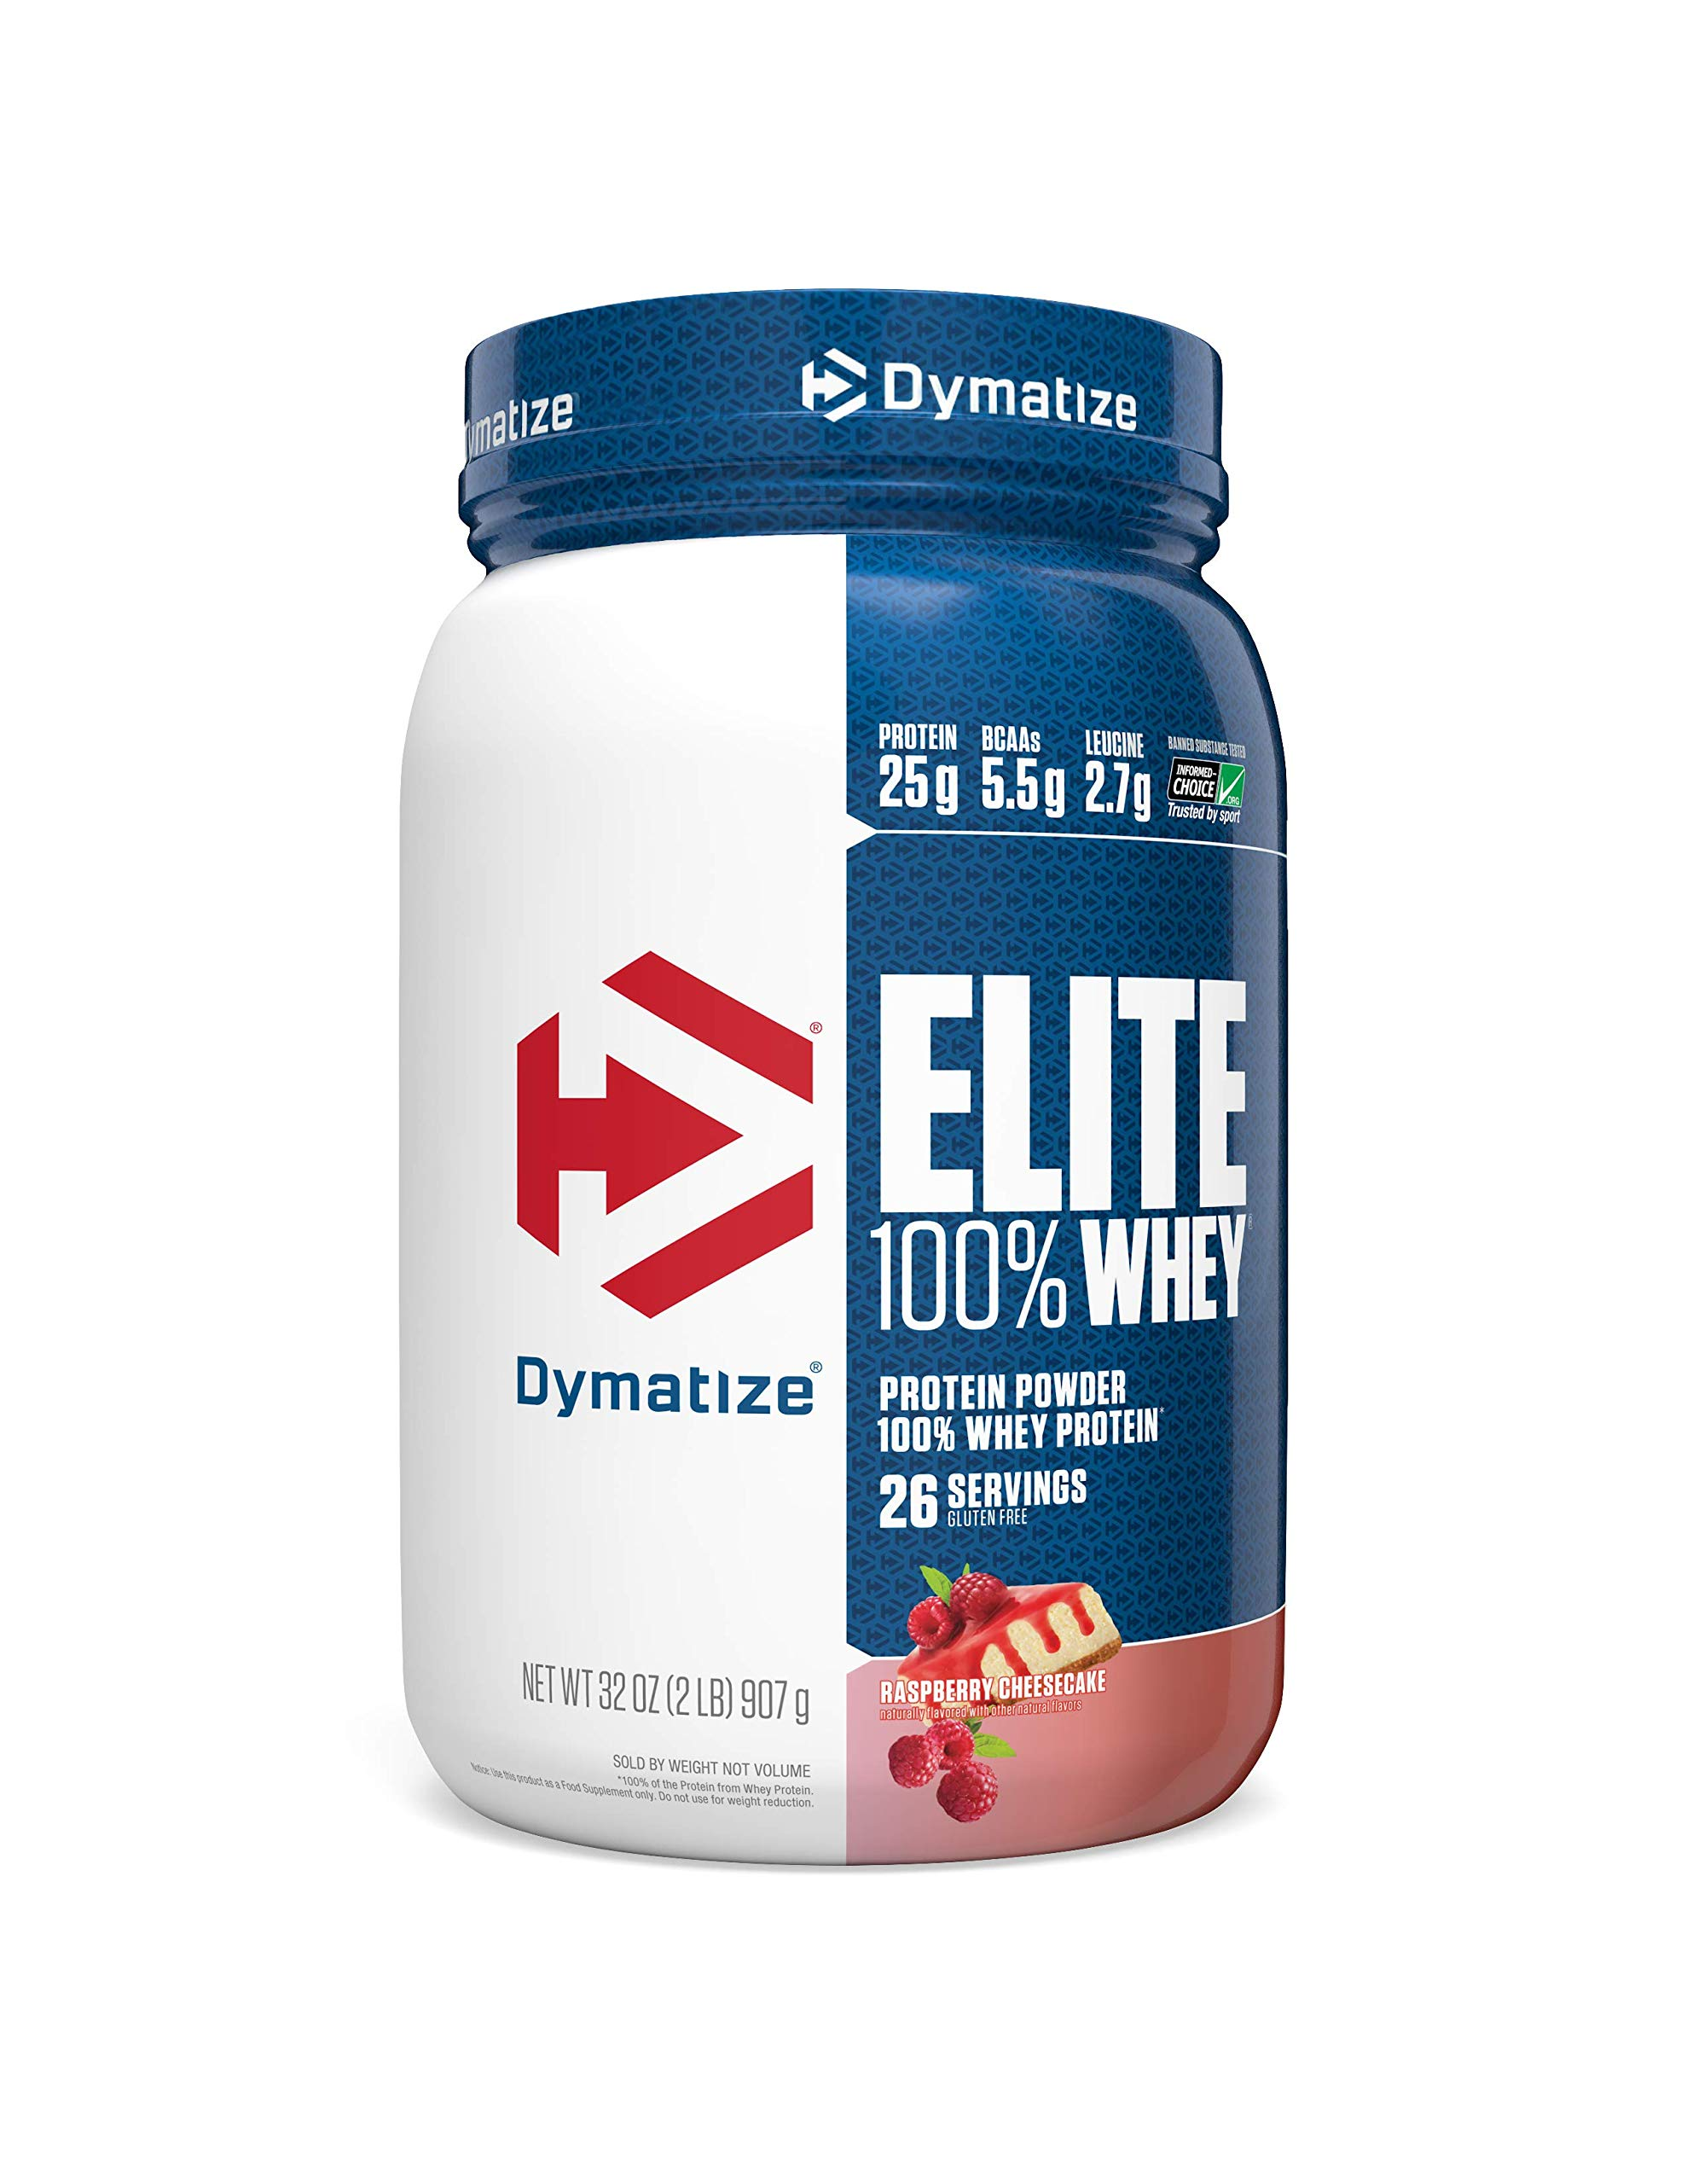 Dymatize Elite 100% Whey Protein Powder, Take Pre Workout or Post Workout, Quick Absorbing & Fast Digesting, Raspberry Cheesecake, 2 Pound by Dymatize